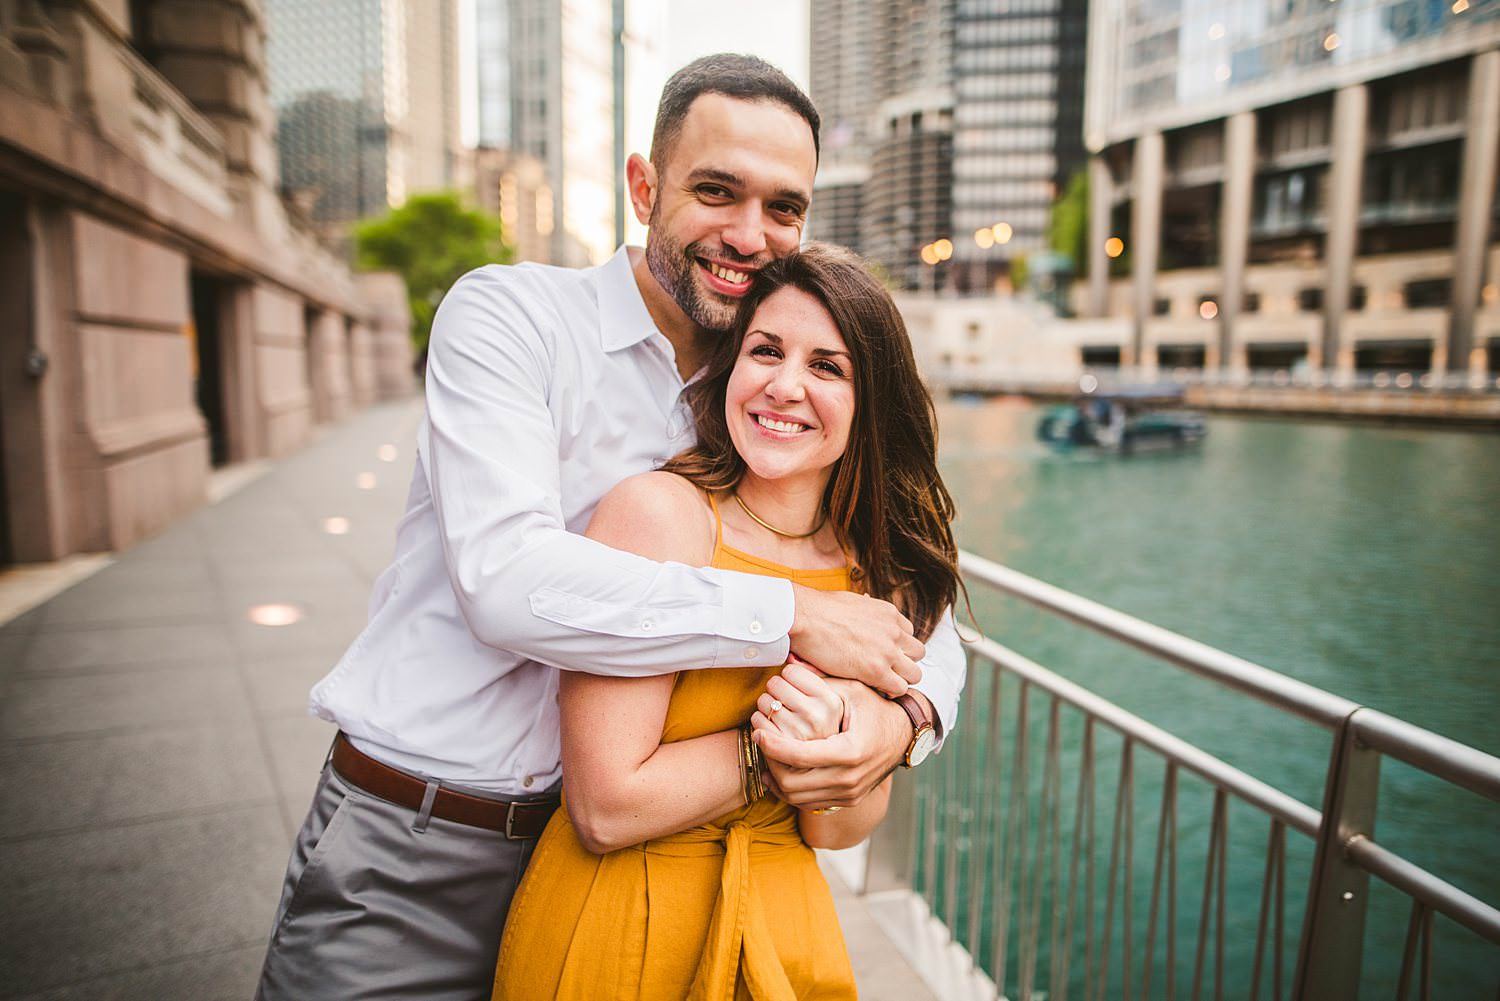 Downtown Chicago Engagement Photos - Museum of Science and Industry Session - Elizabeth and Dan -47.jpg